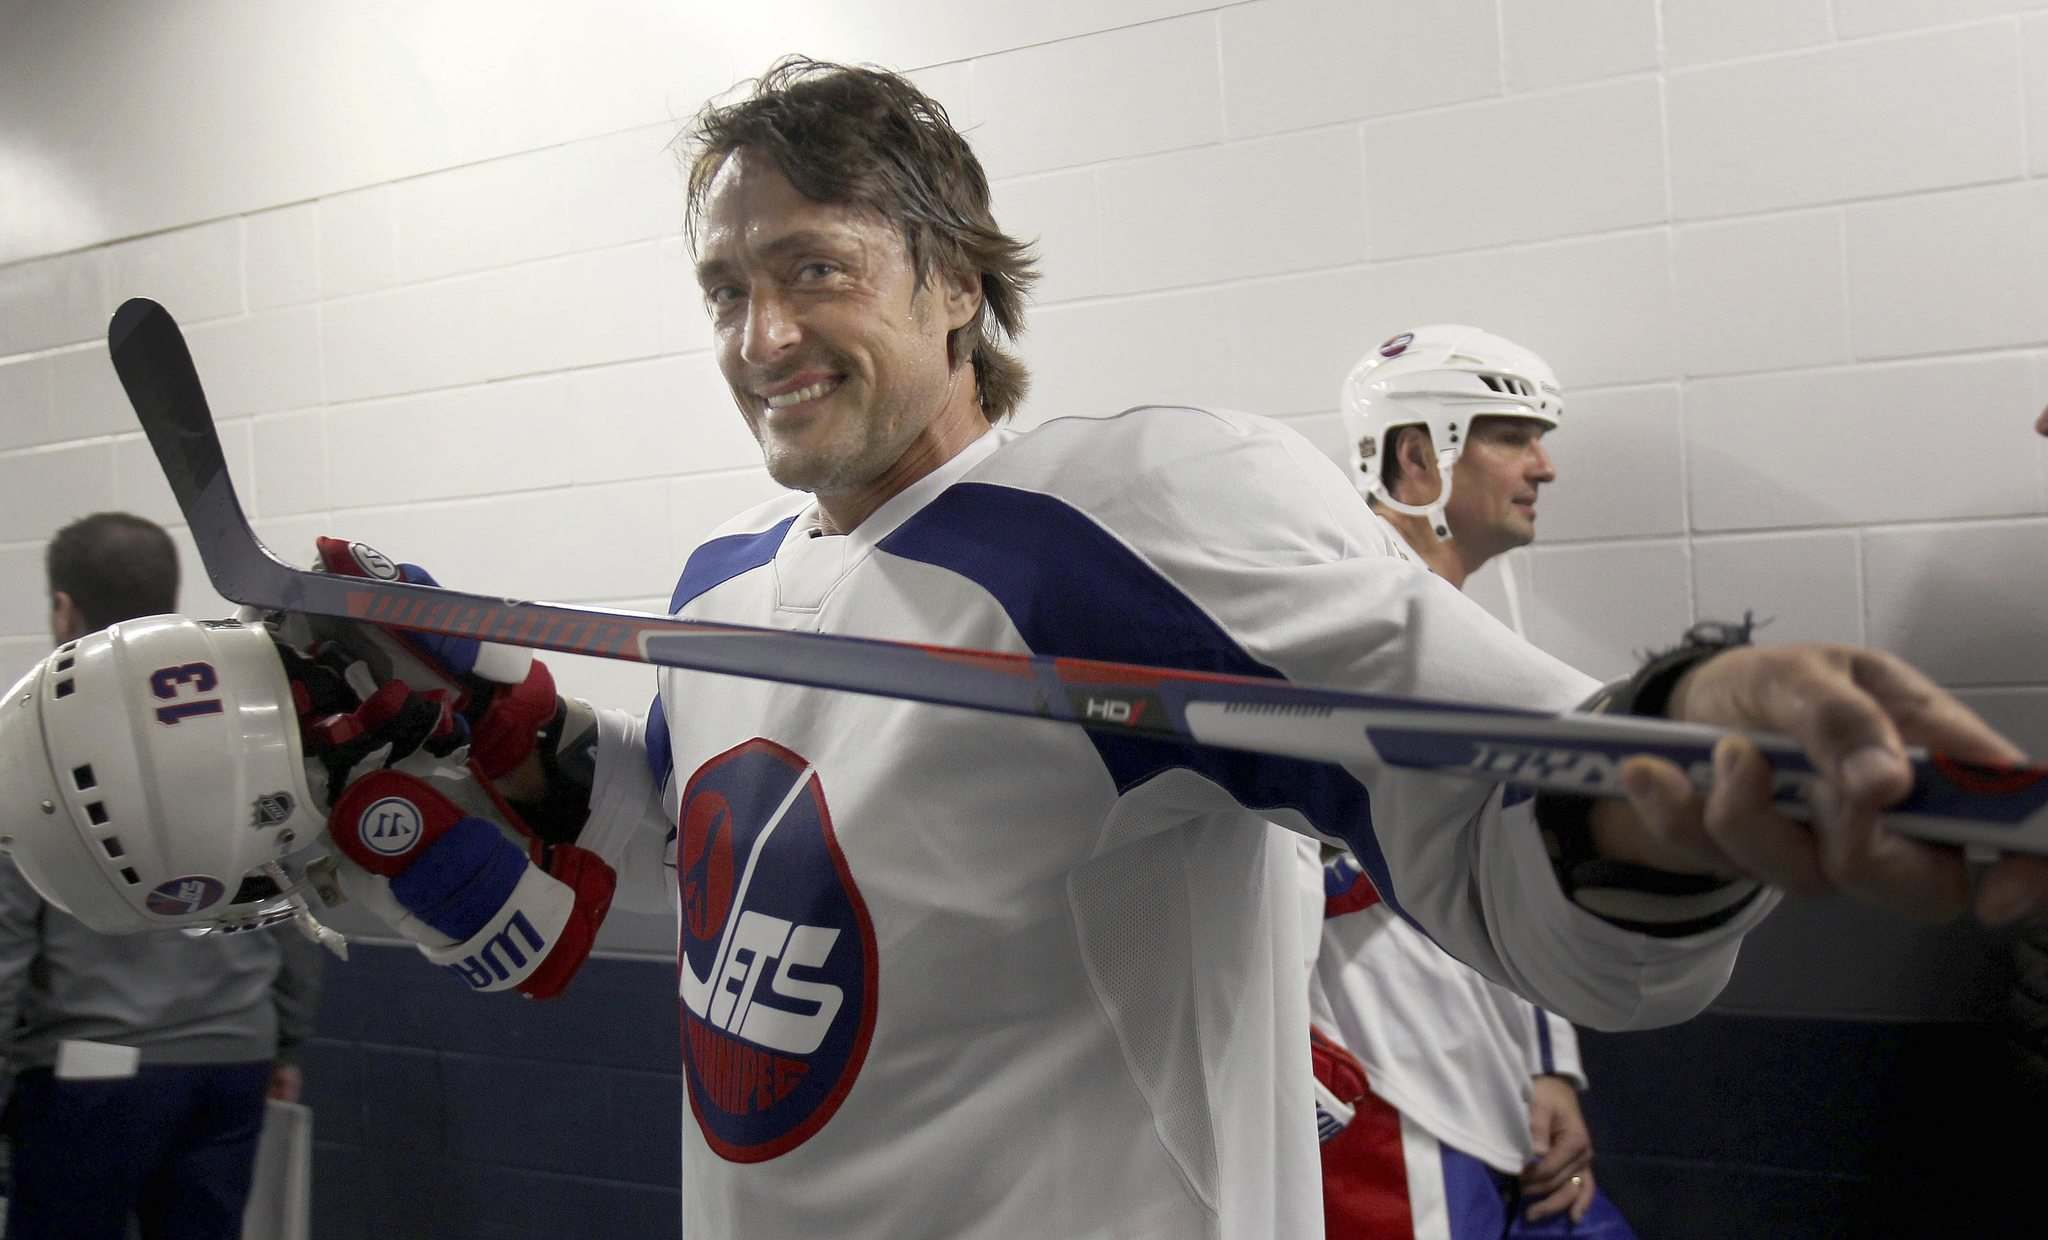 JOE BRYKSA / WINNIPEG FREE PRESS</p><p>Teemu Selanne stops to smile for a photo as he heads for the locker room after practice in the MTS Centre.</p>